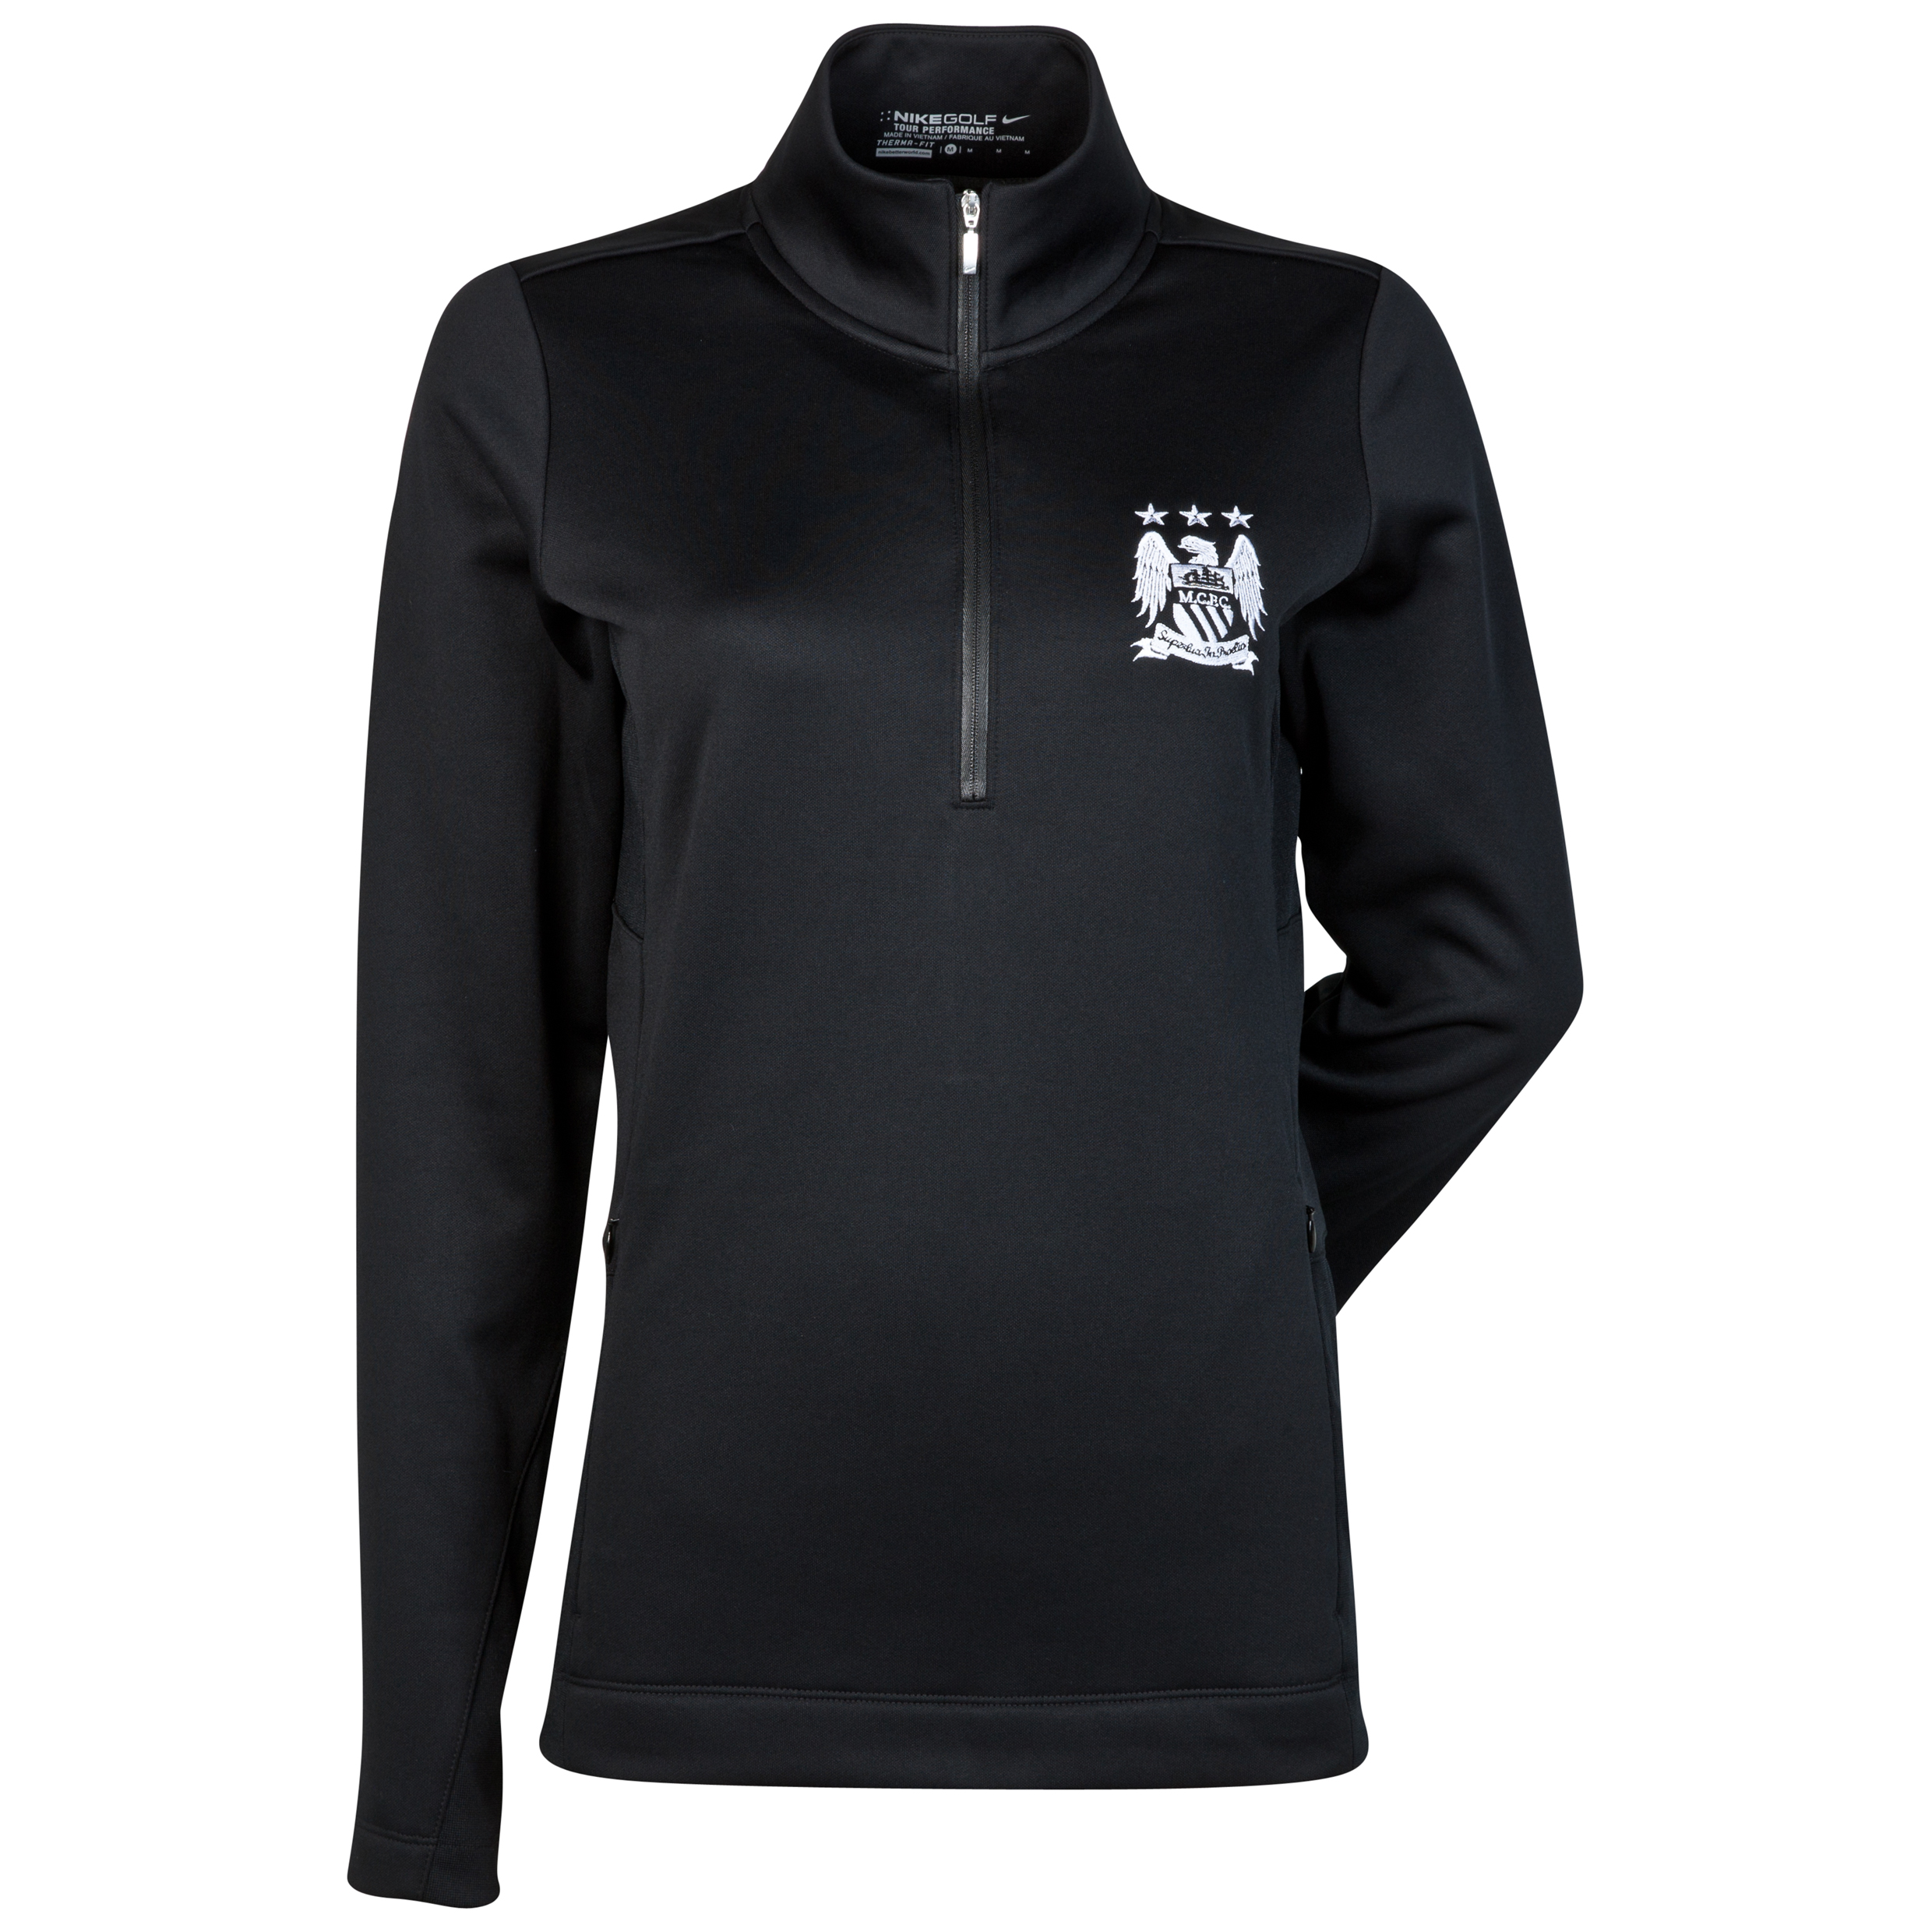 Manchester City Nike Thermal 1/2 Zip Top - Womens Black